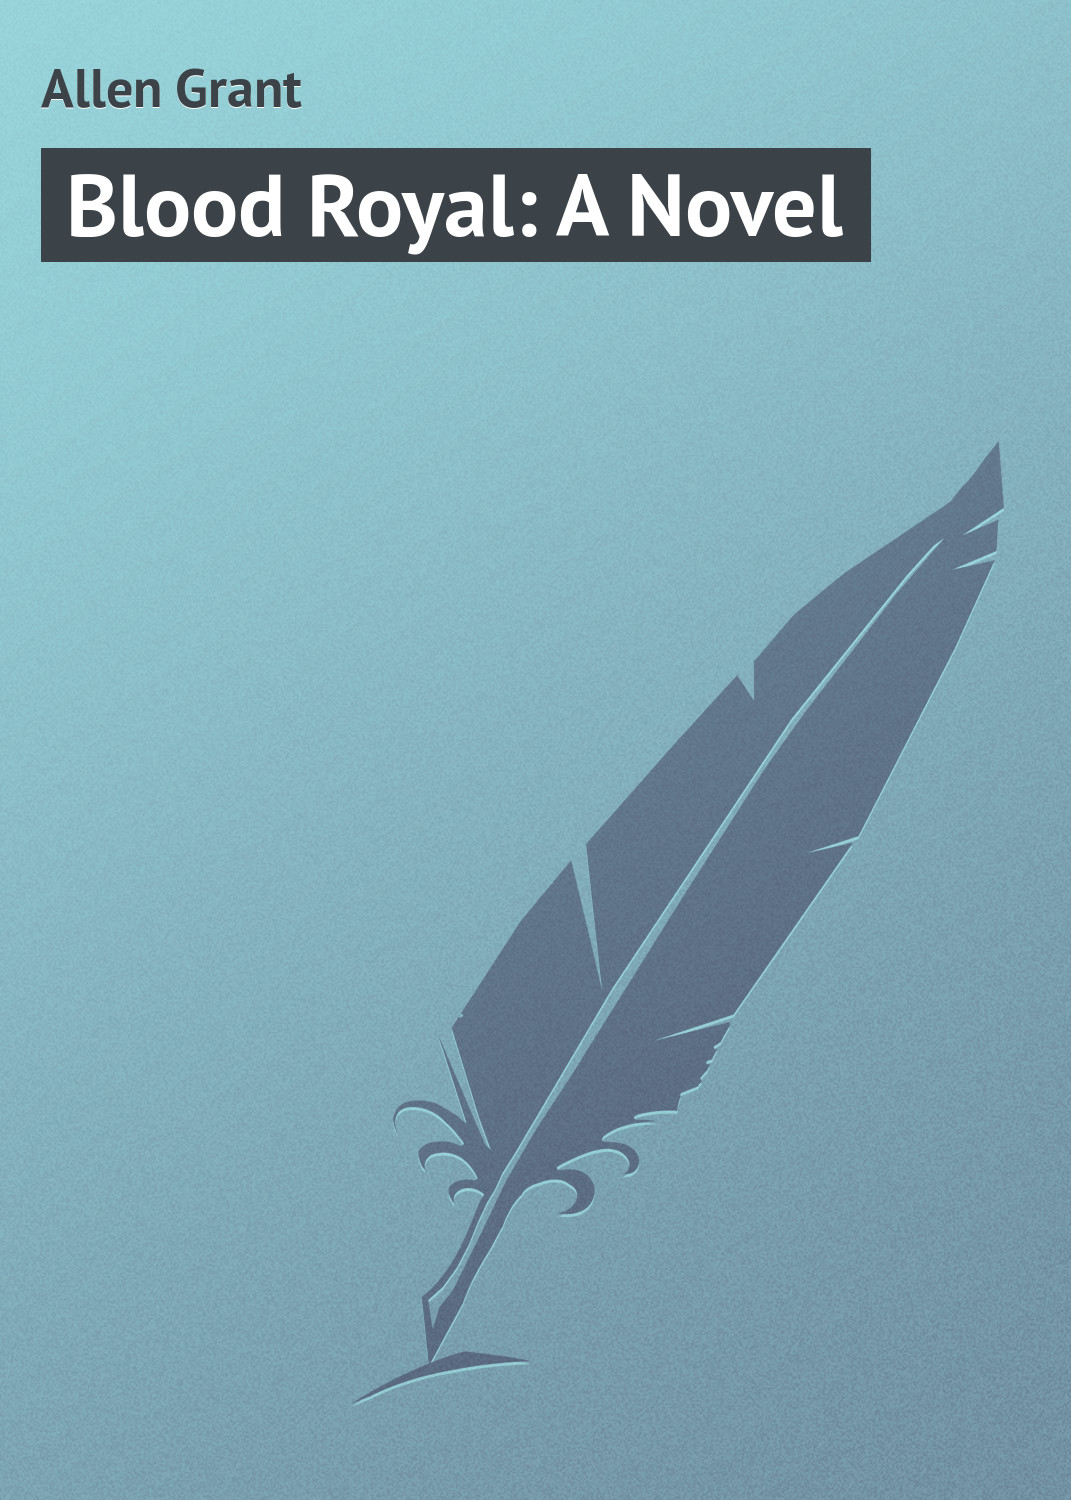 цена Allen Grant Blood Royal: A Novel